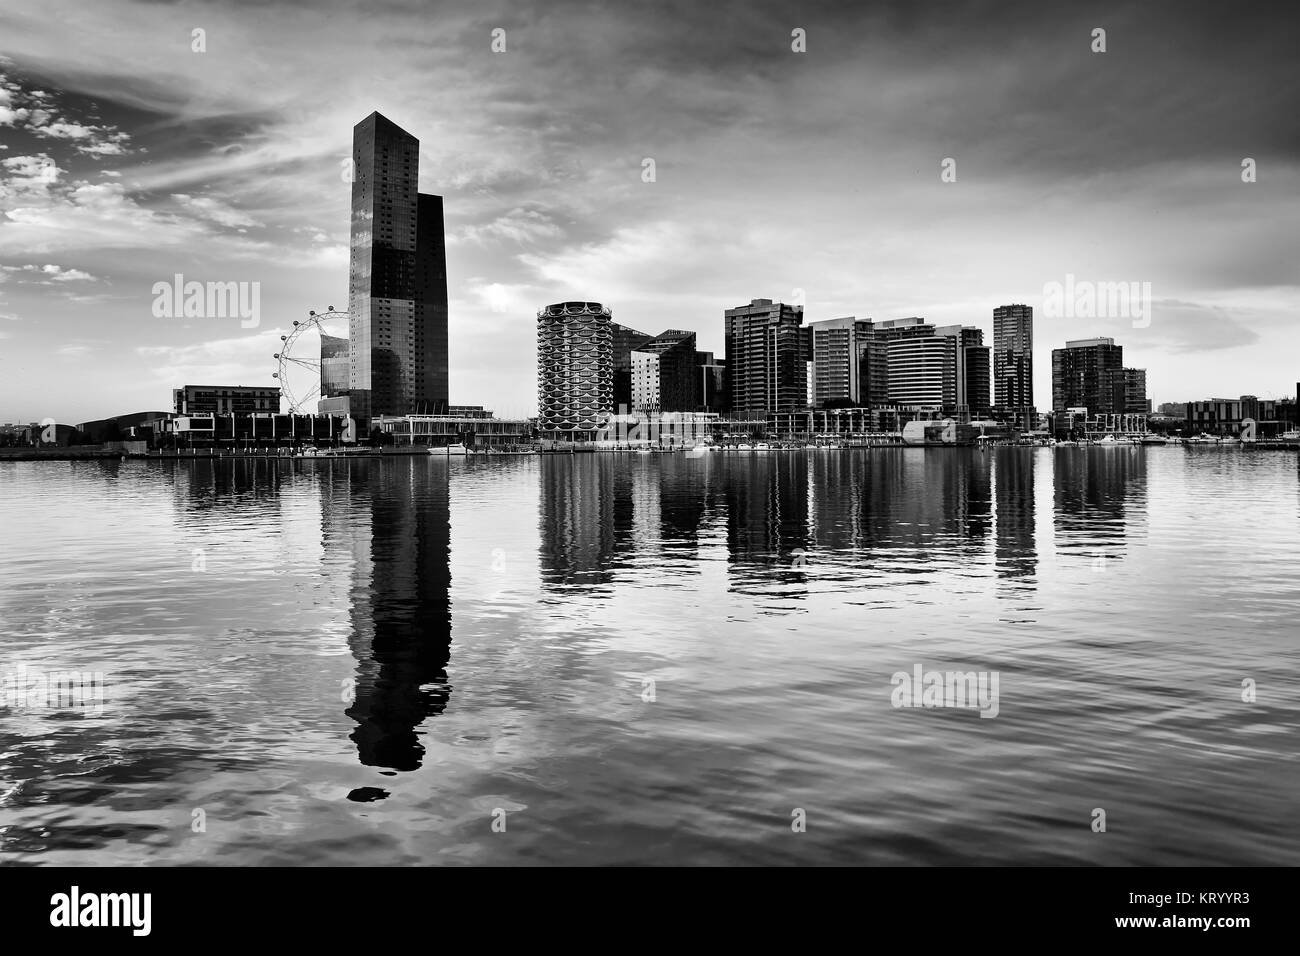 Black white dramatic view of modern Docklands residential high-rise towers and amusement observation wheel reflecting - Stock Image